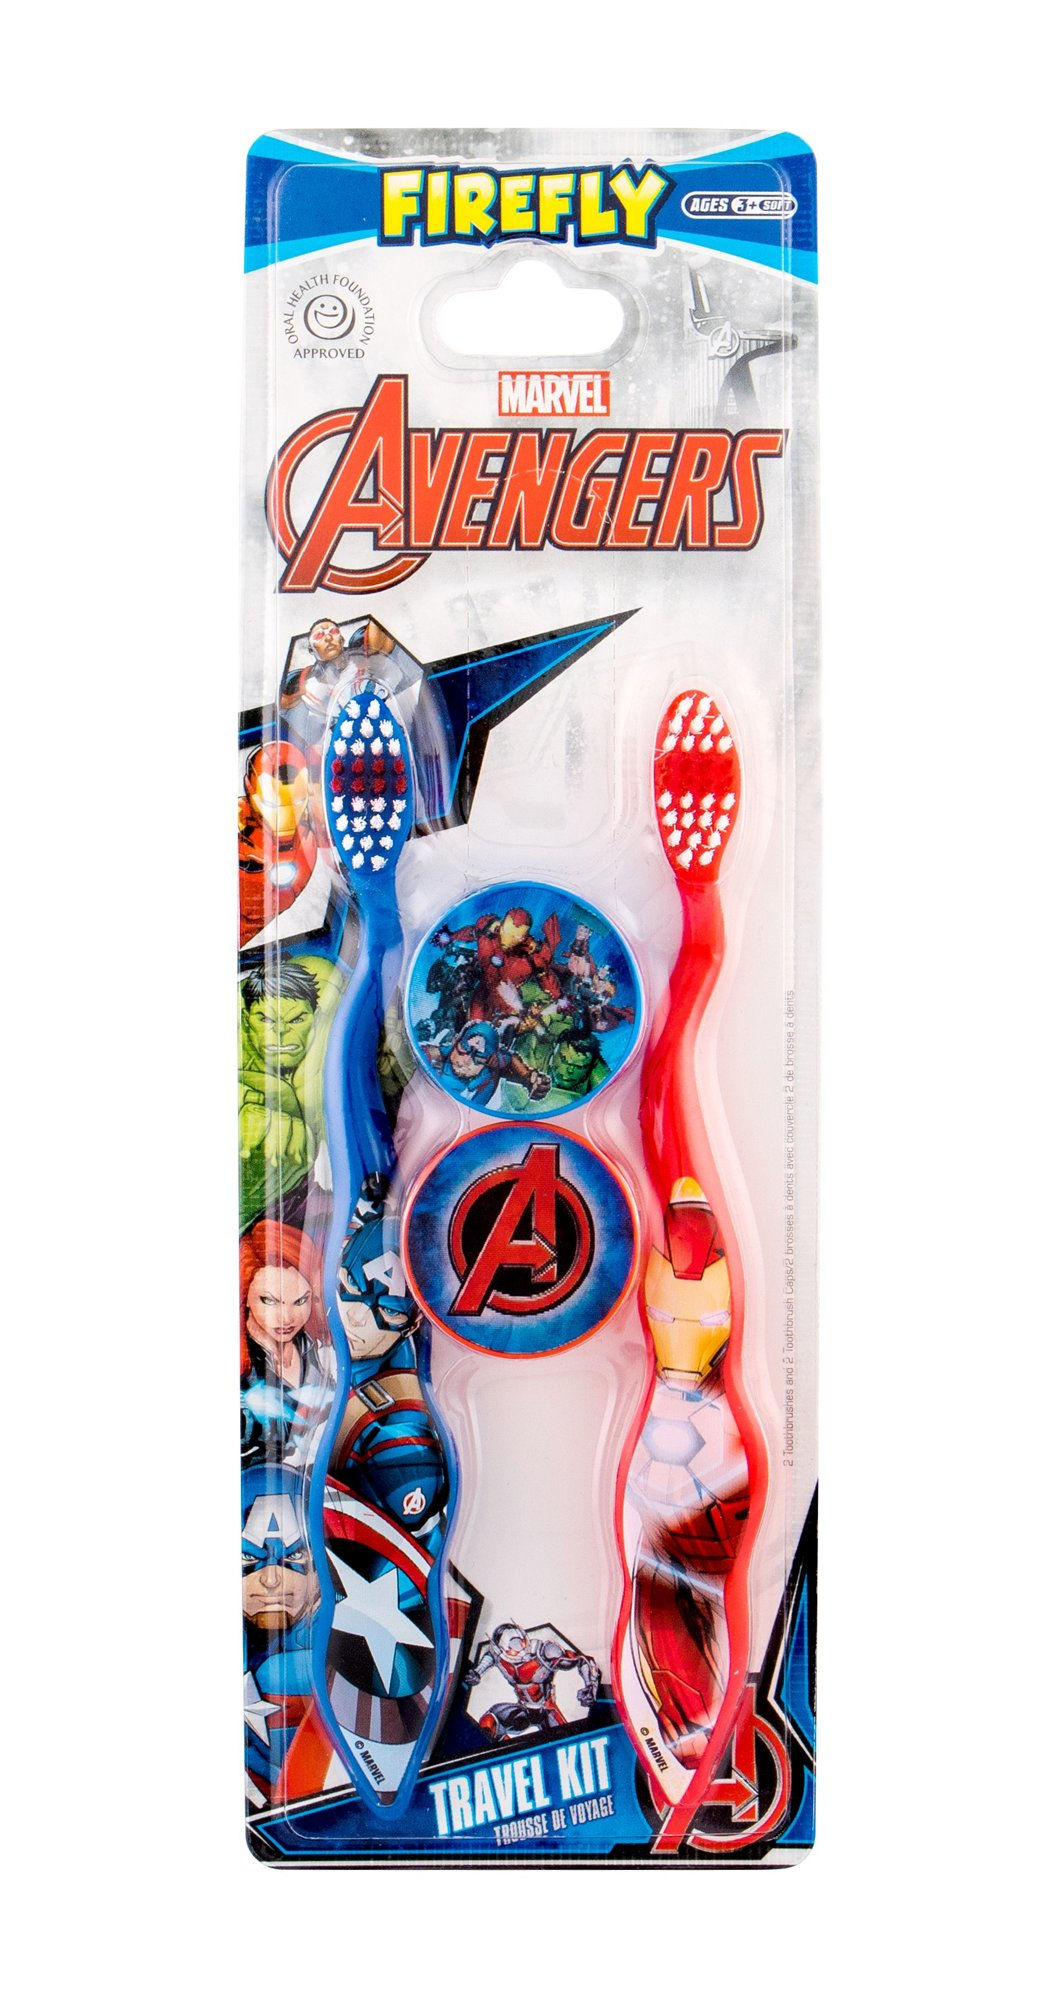 Marvel Avengers Toothbrush Toothbrush 1ml